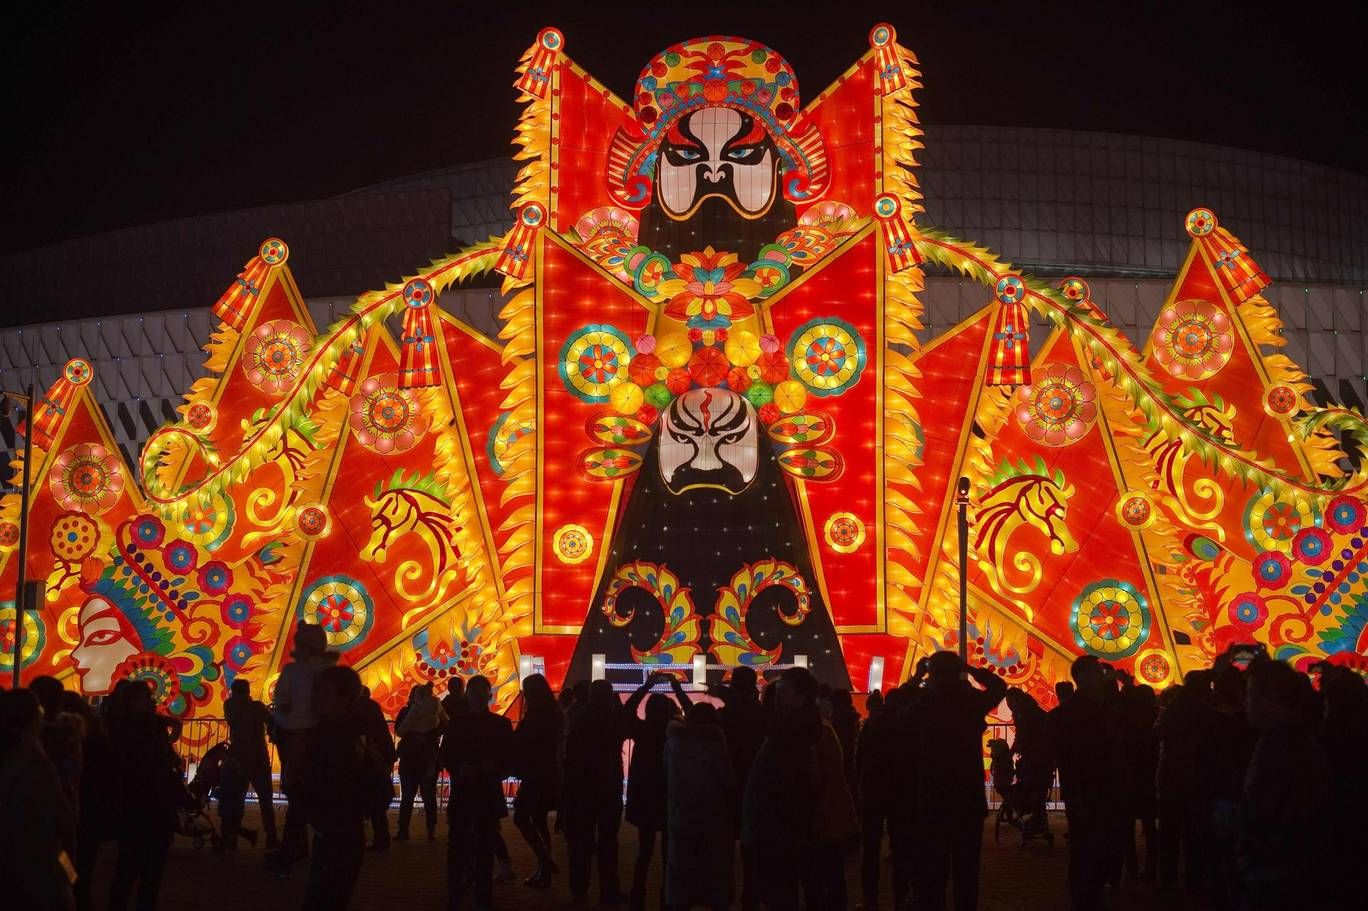 Lantern festival marks last day of Chinese New Year with